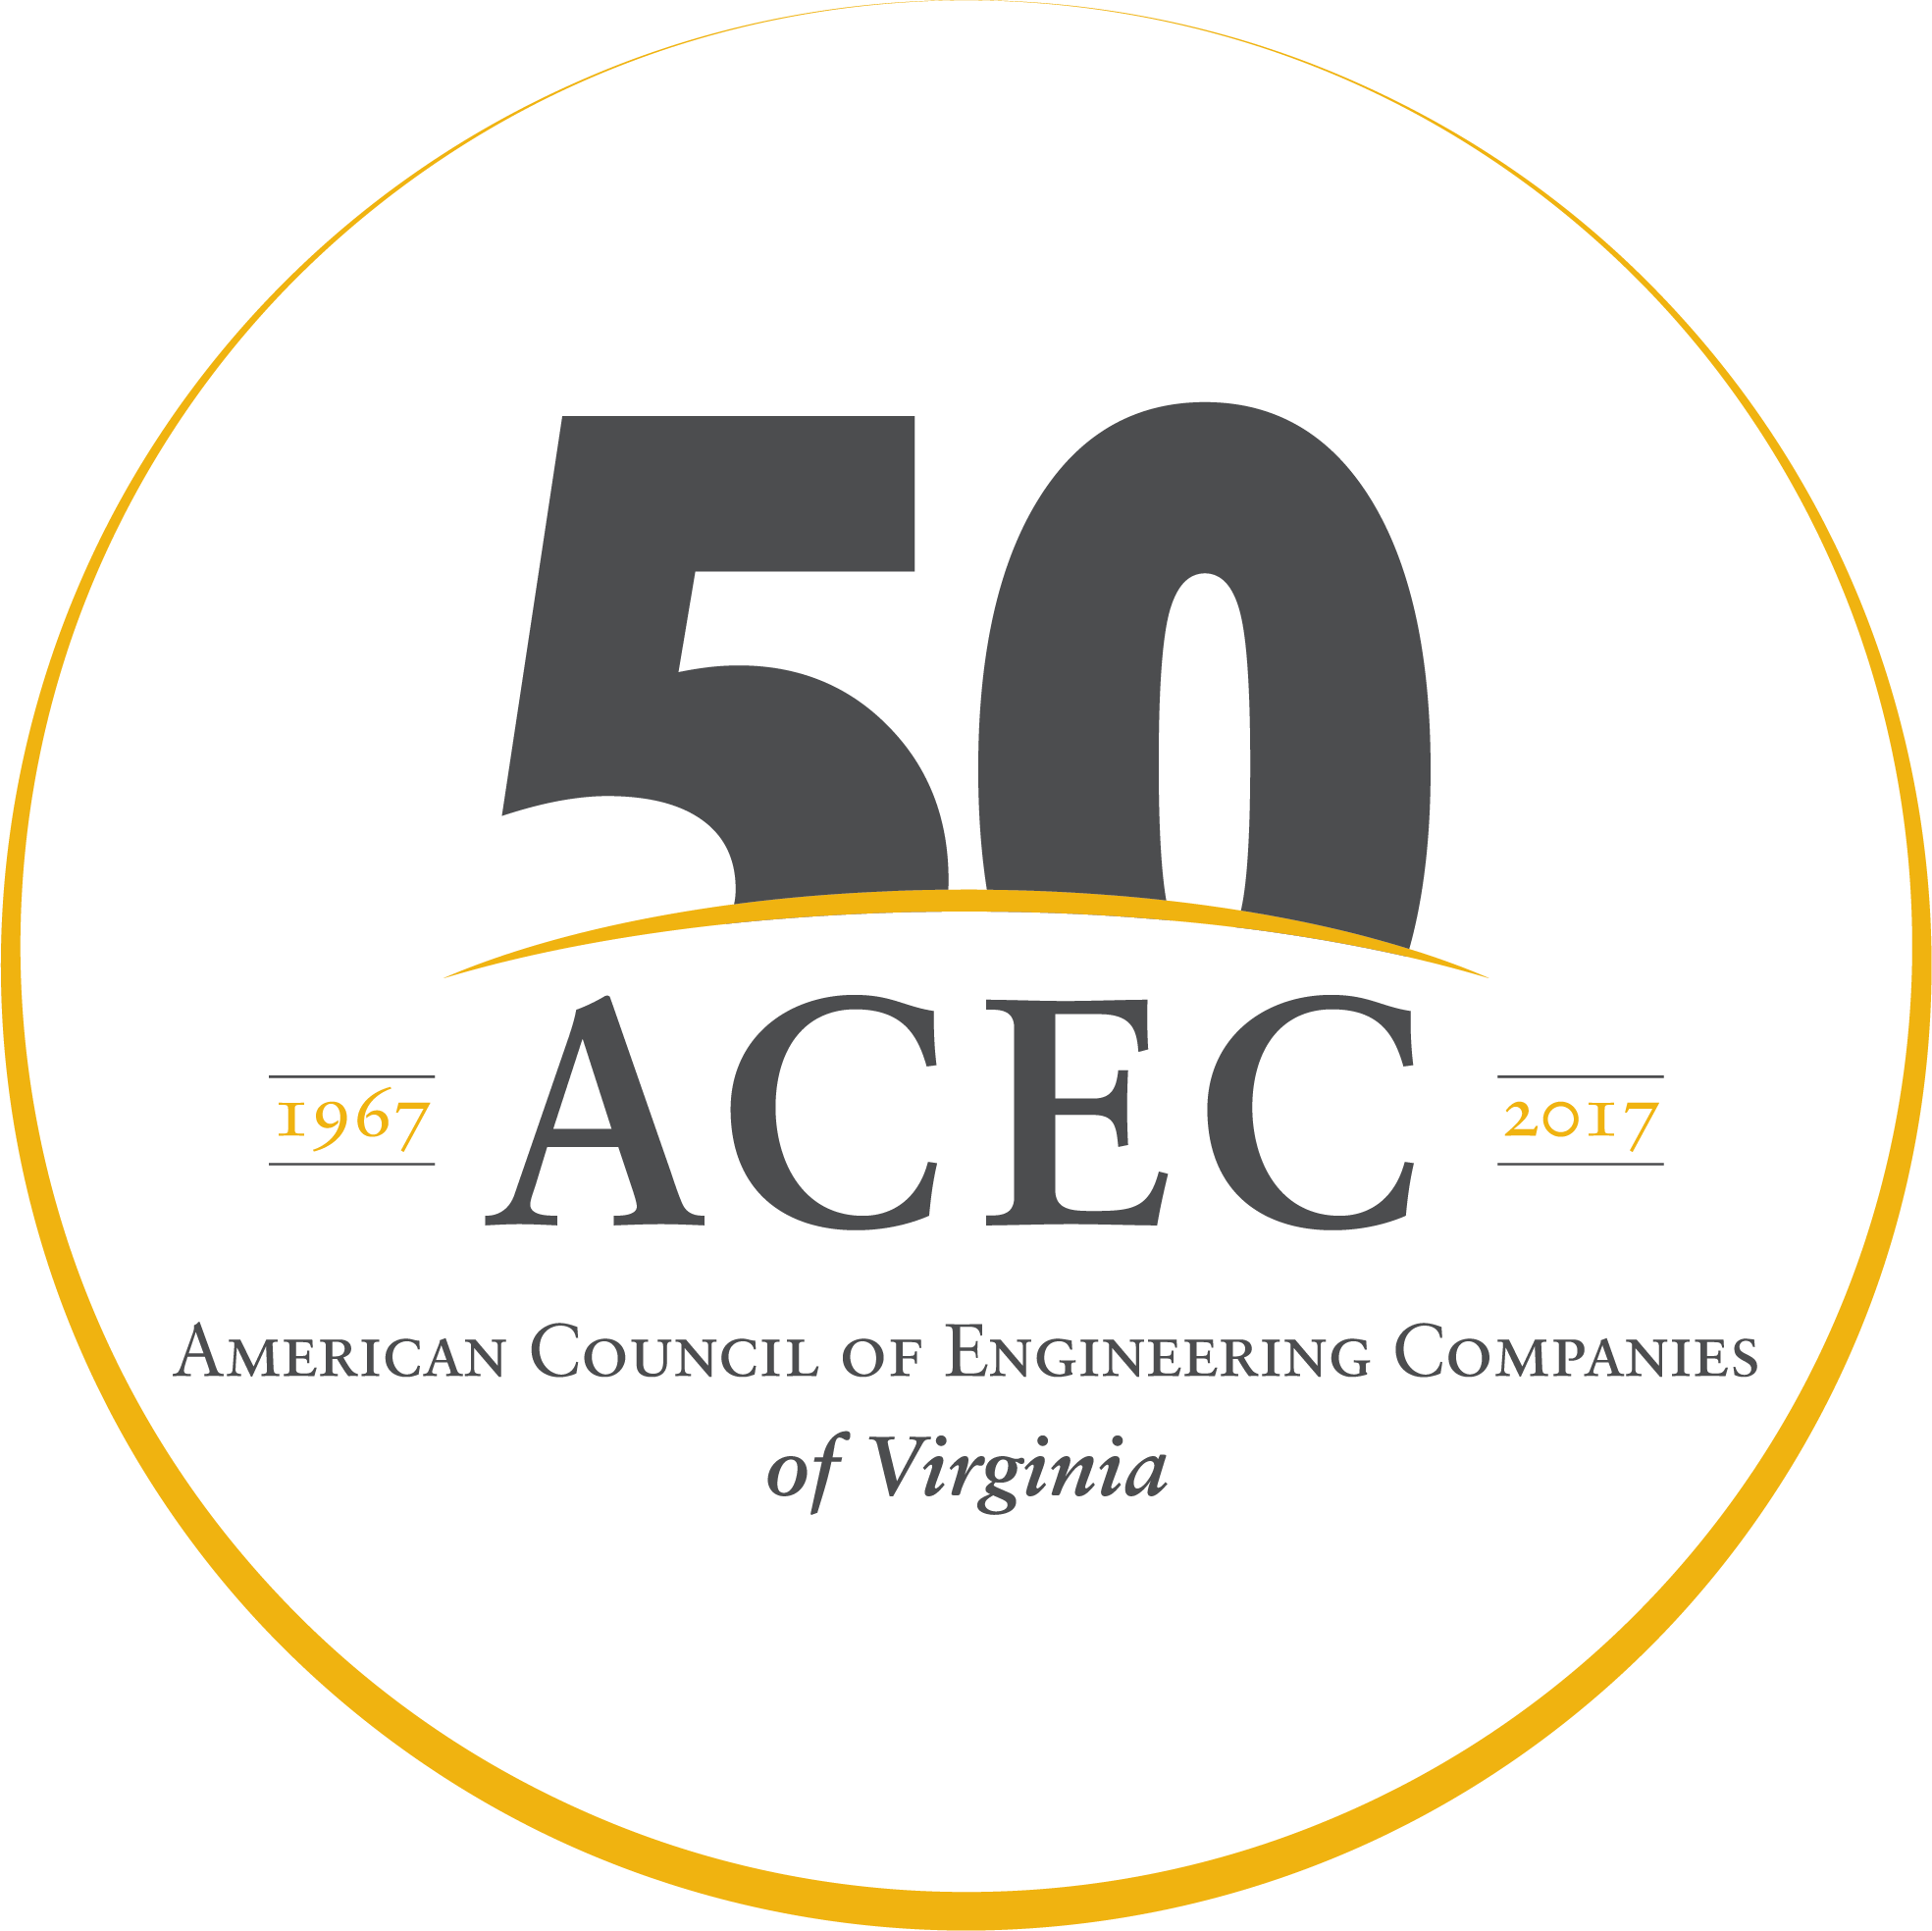 ACEC/VA is Celebrating 50 Years